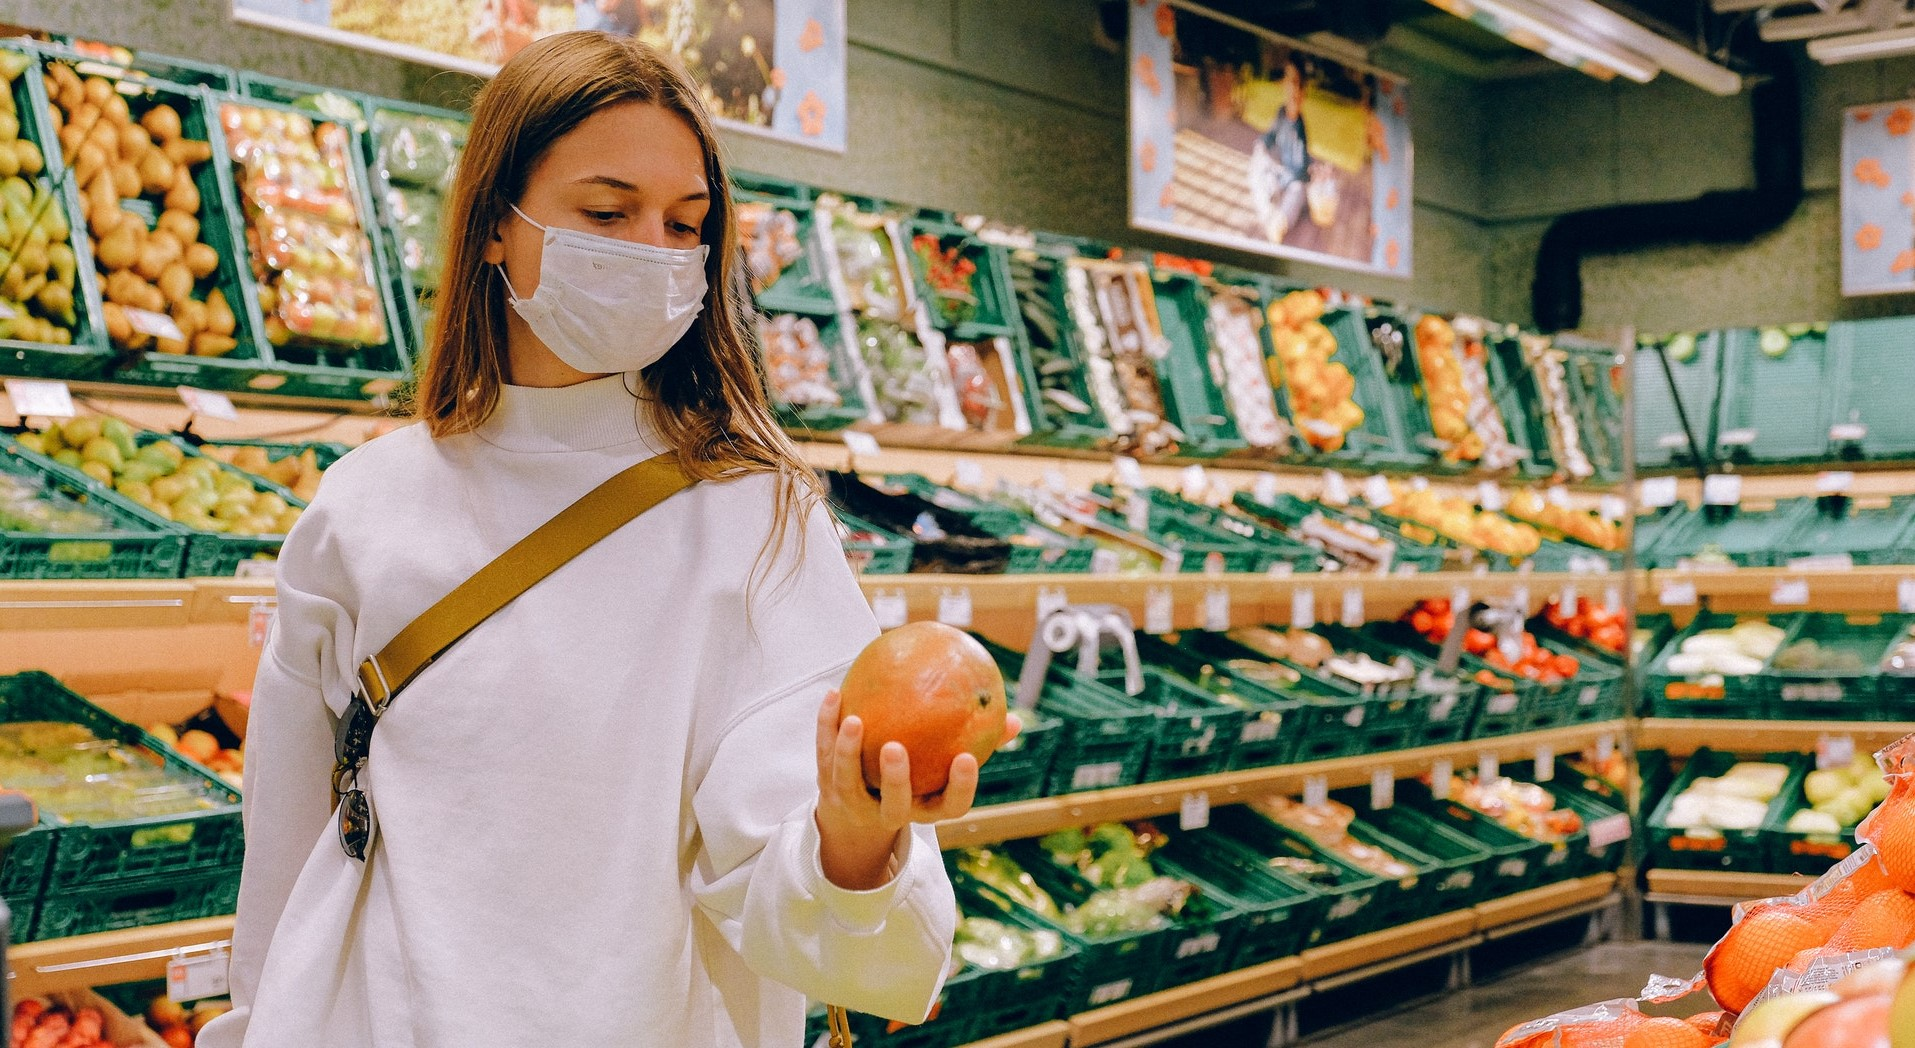 Woman Shopping Wearing Facemask Photo by Anna Shvets from Pexels header